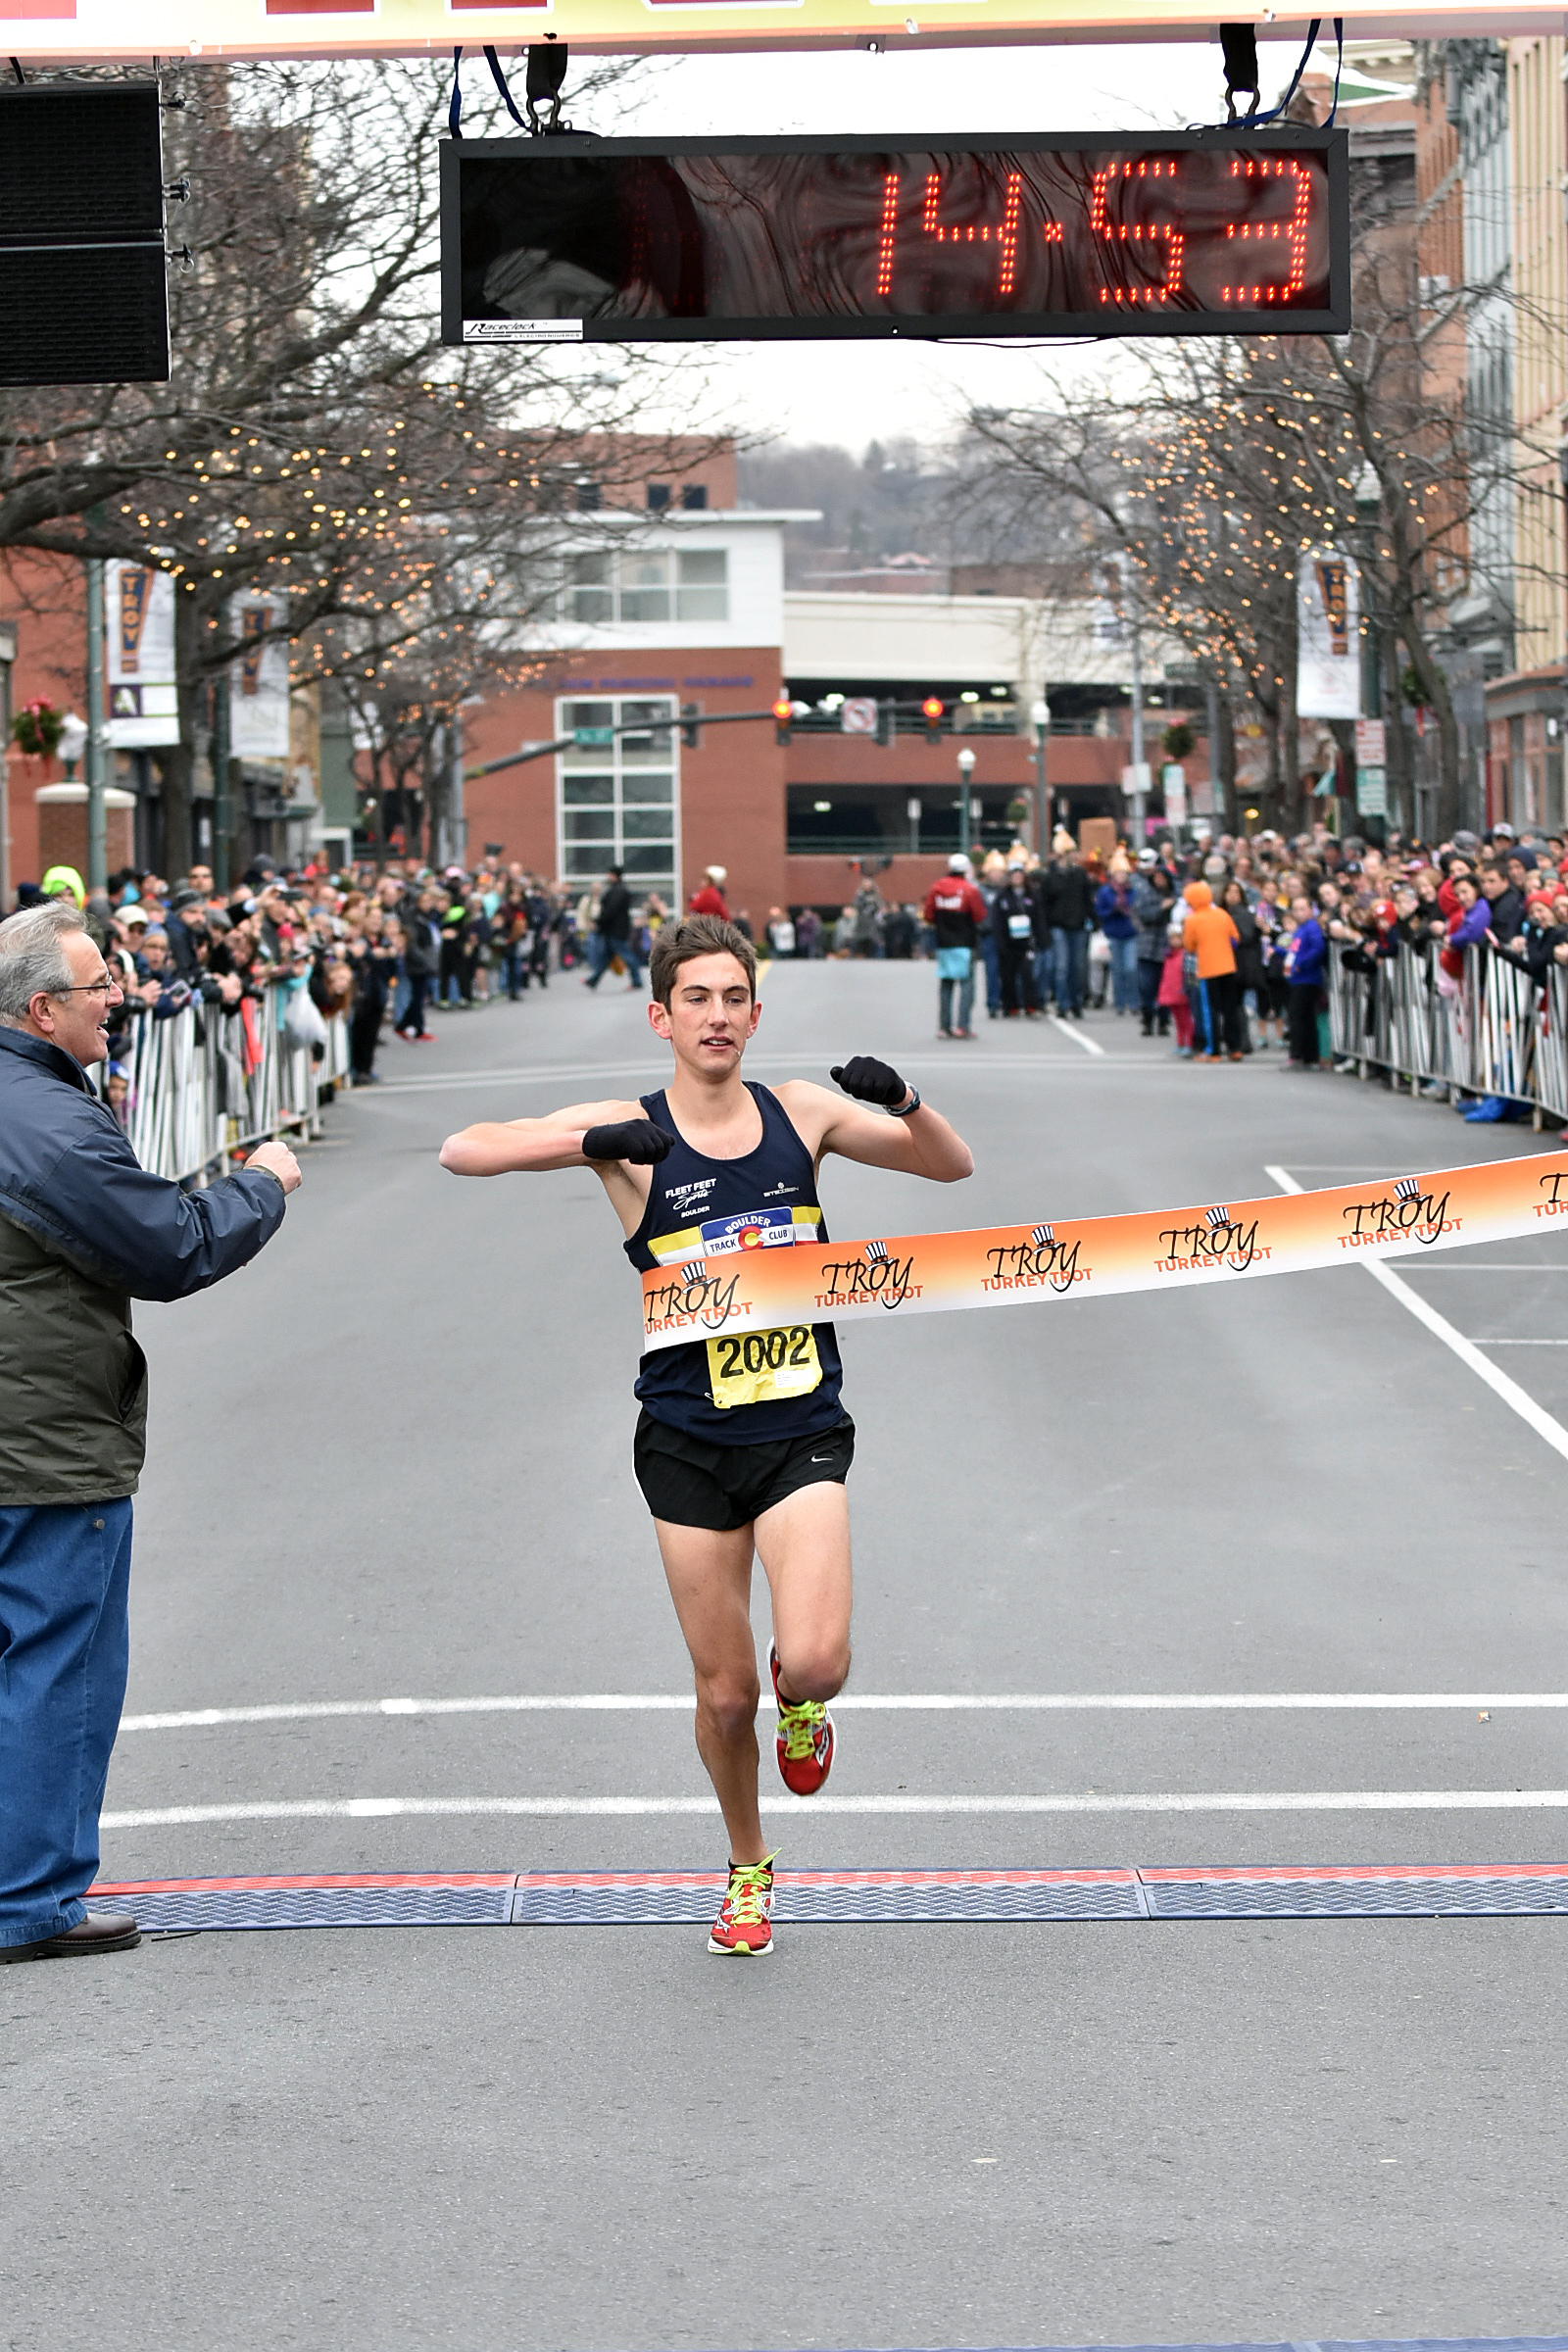 Jonathan Aziz from Boulder, CO runs sub 15 and smashes the 5k course record with a time of 14:53 at the 68th Troy Turkey Trot in Troy, NY. Photo by Pat Hendrick Photography.